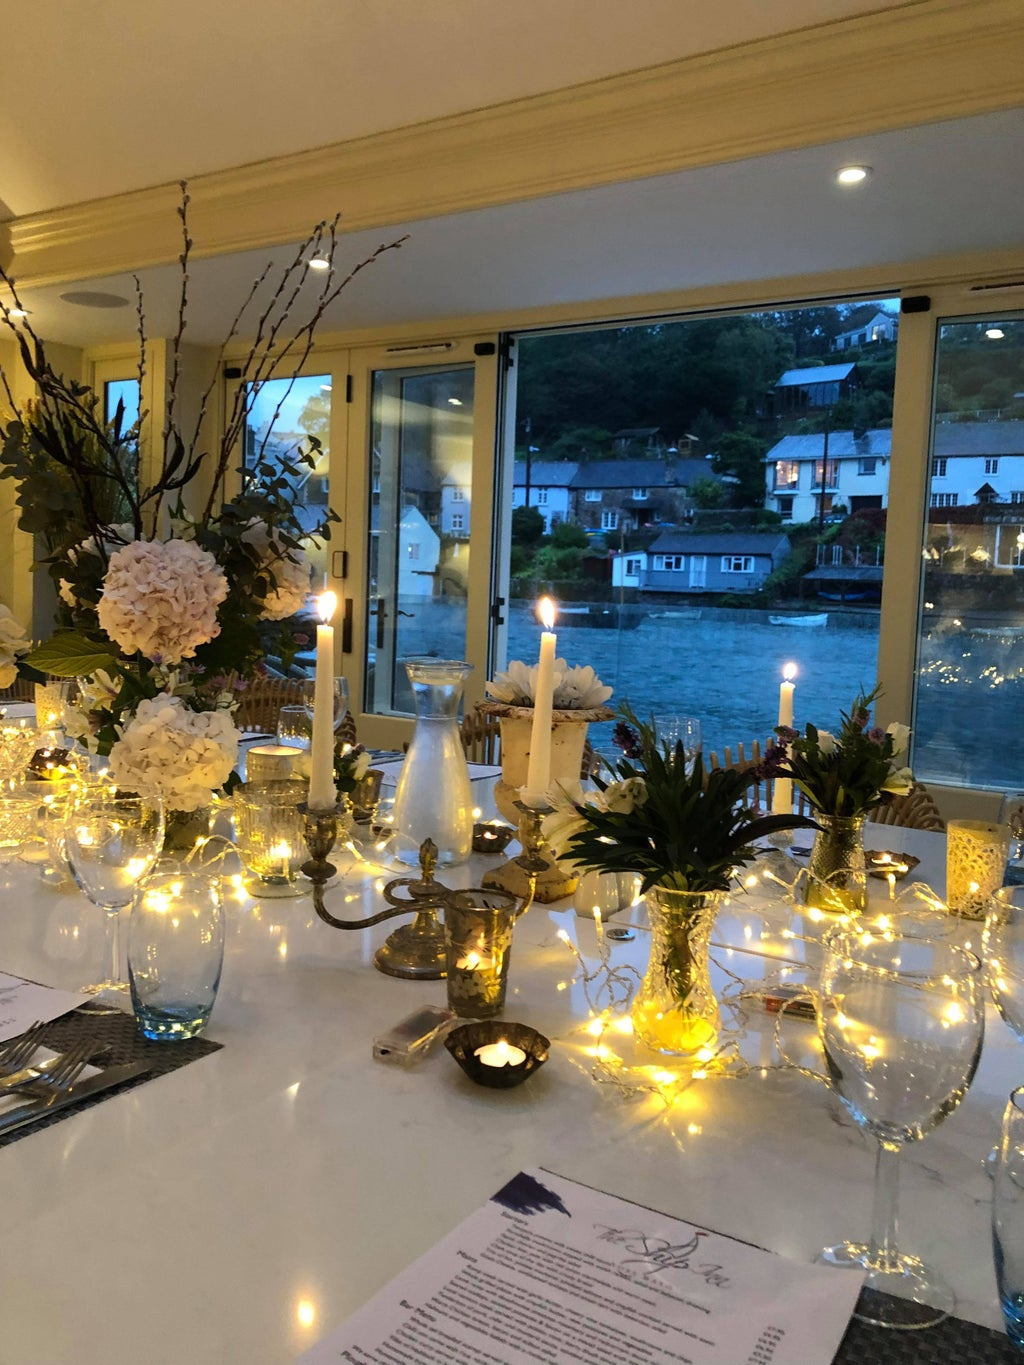 A restaurant conservatory with candles, cutlery and decorations